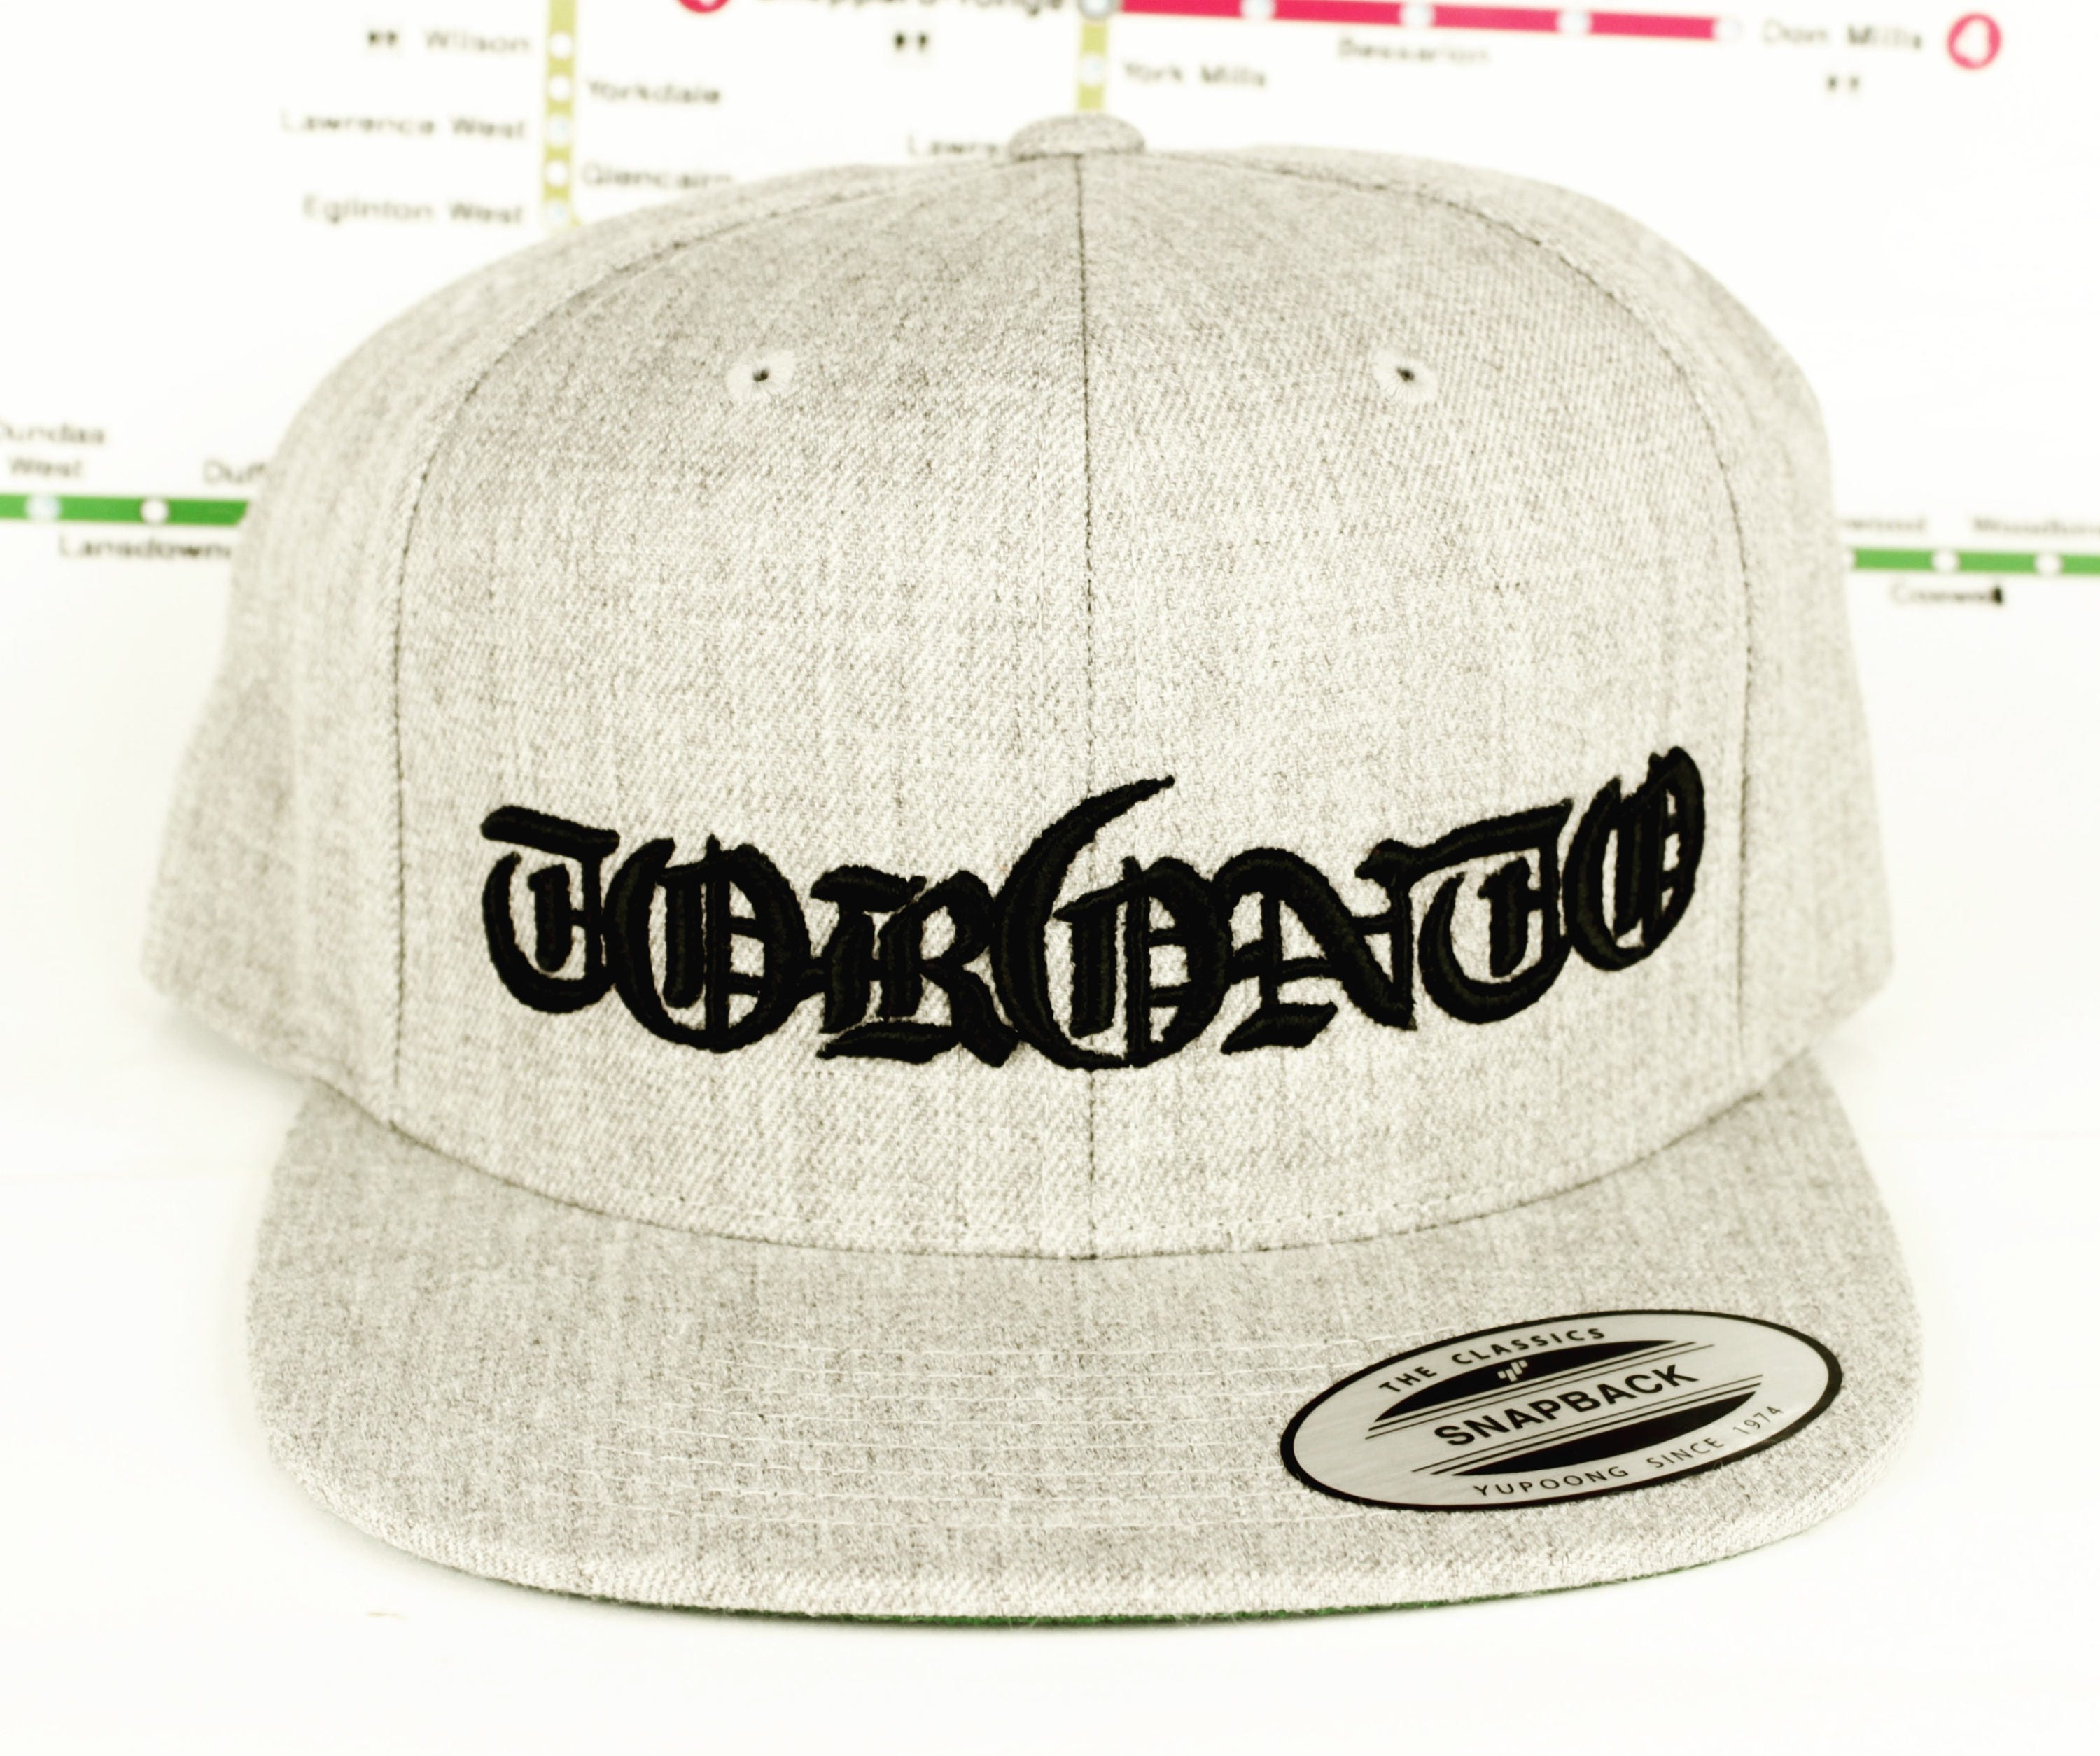 Grey-ter Tor6nto Area Custom Snap Back Hats  3D Raised